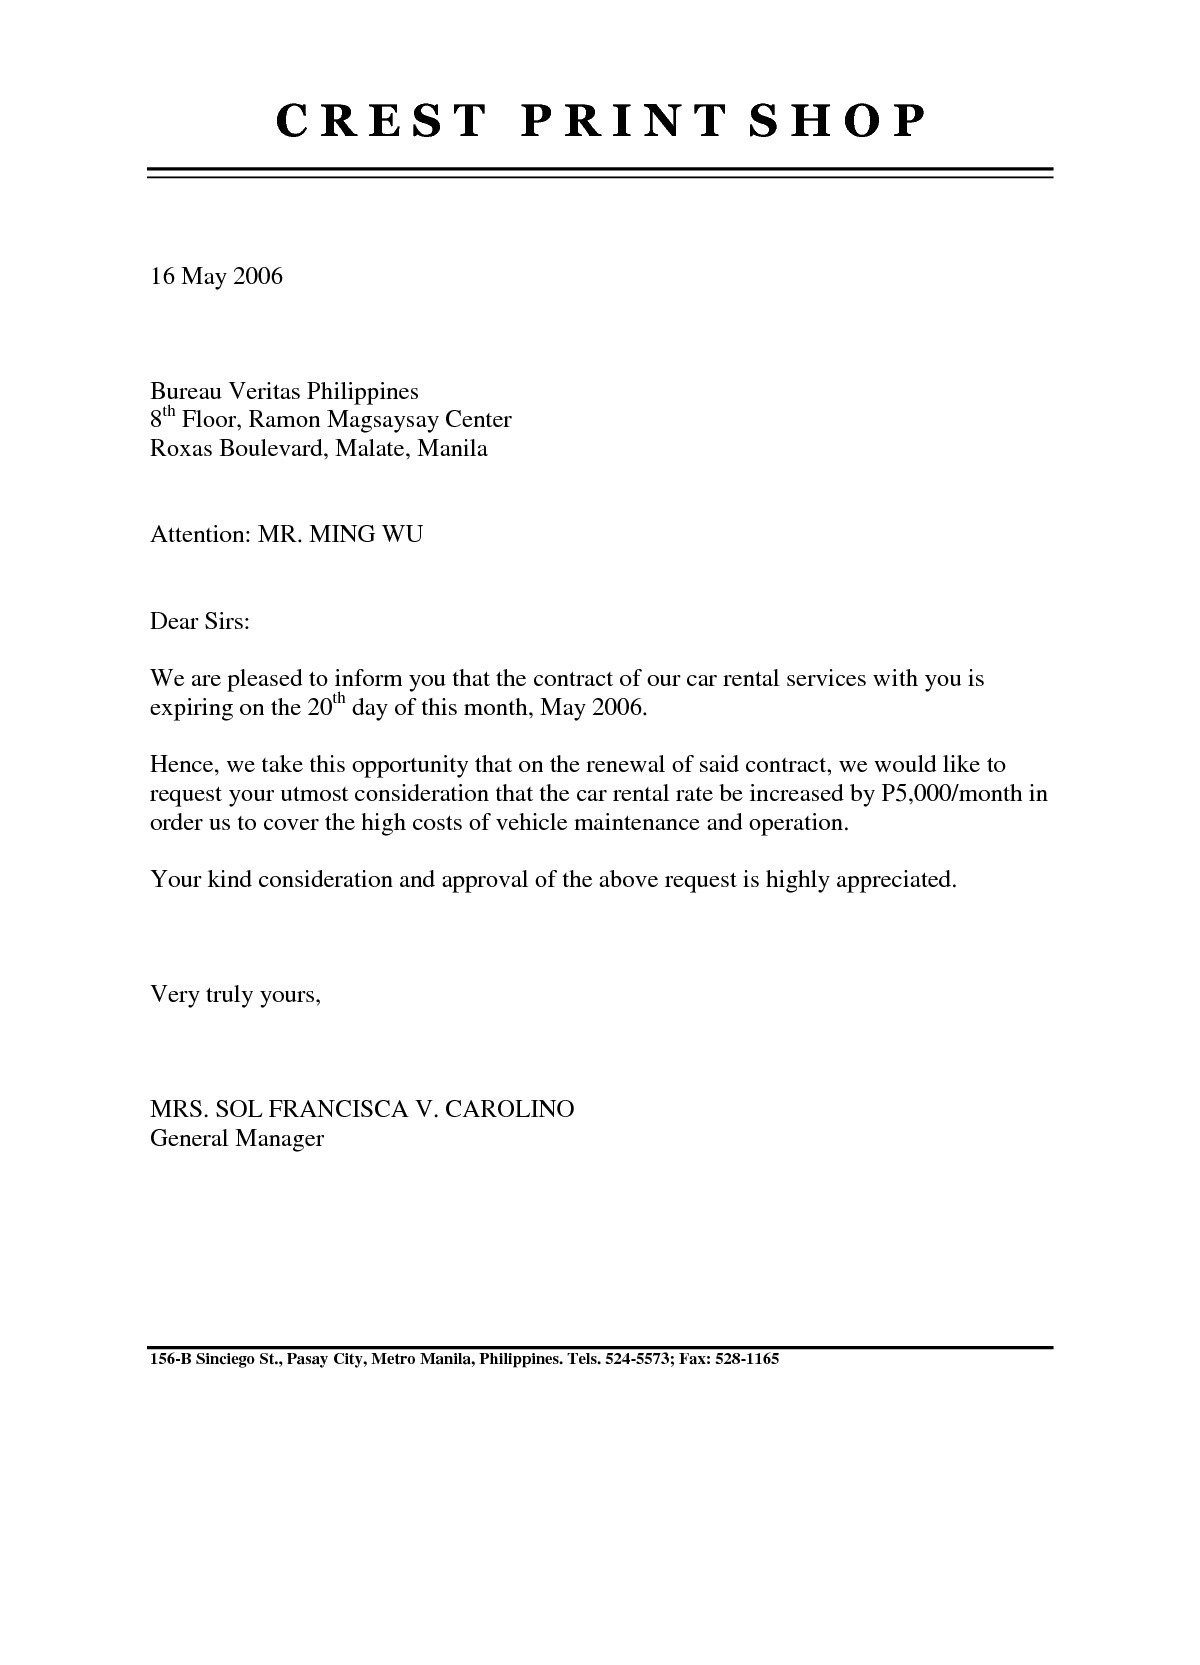 Lease Letter Template - Tenancy Agreement Renewal Template Awesome Od Renewal Letter Sample